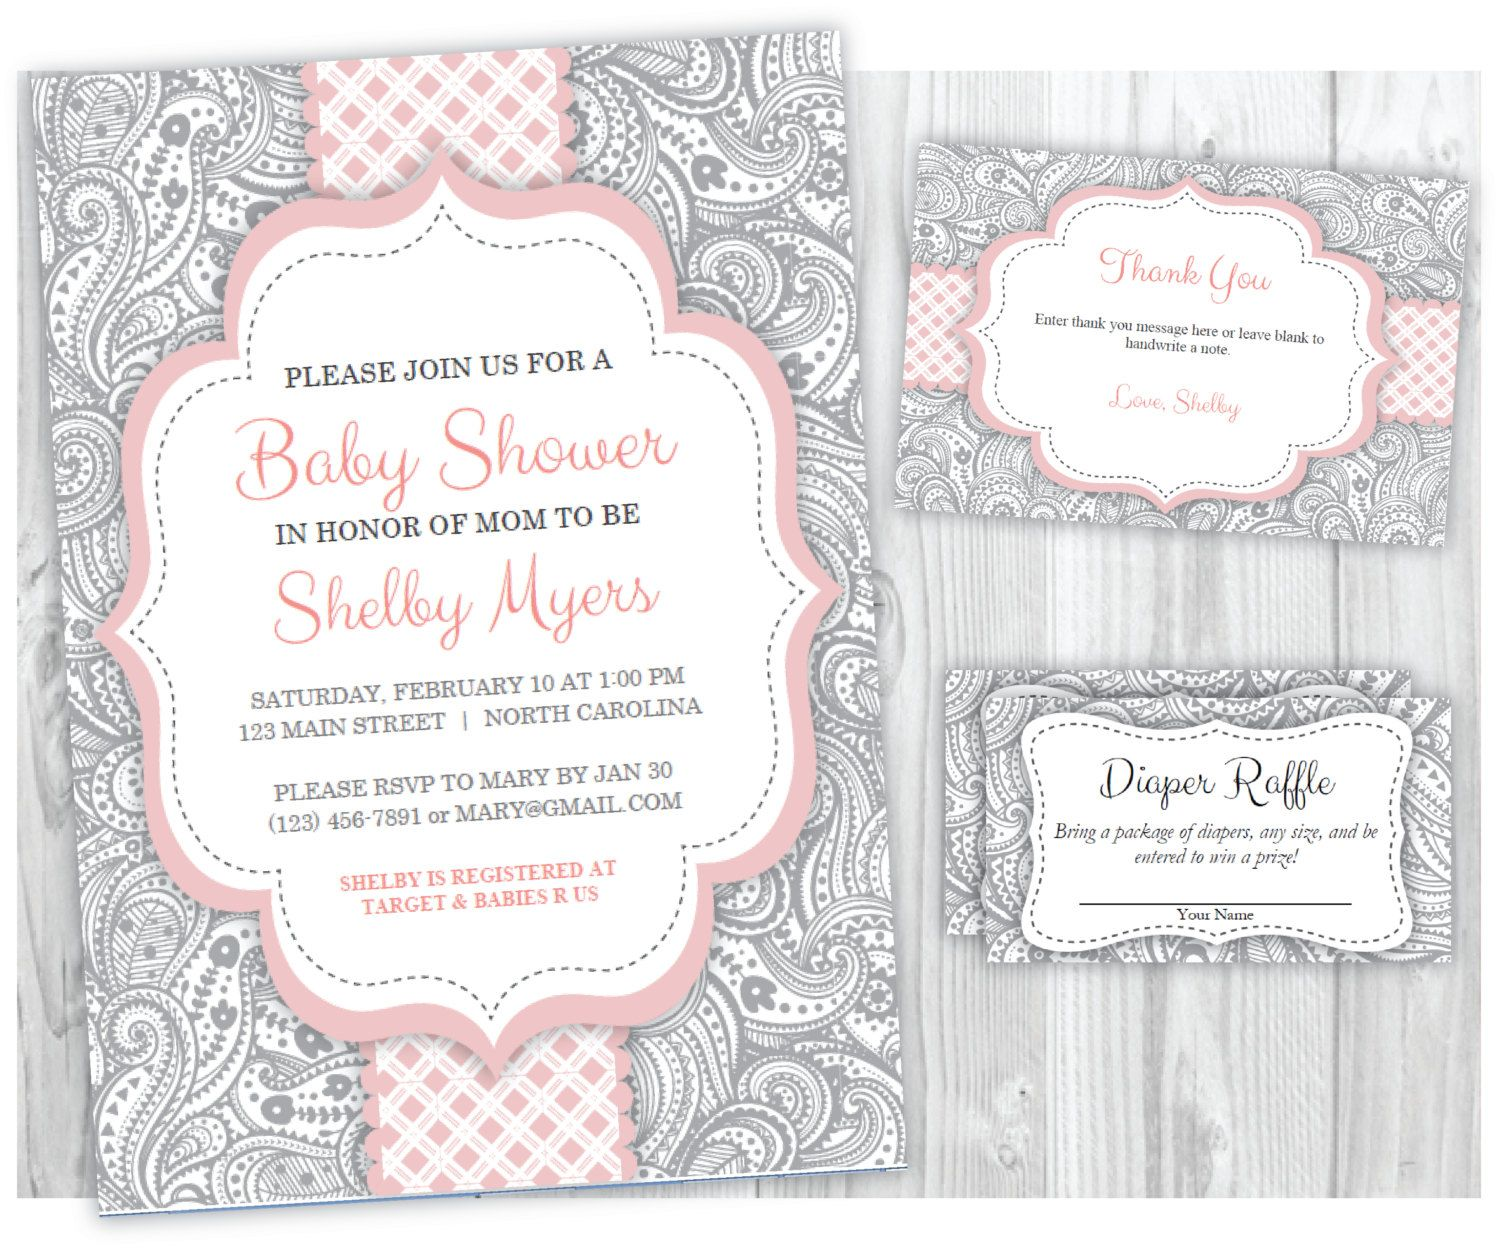 Babyshowerinvitation pink and gray girl baby shower invitation thank babyshowerinvitation pink and gray girl baby shower invitation thank you card and diaper raffle ticket filmwisefo